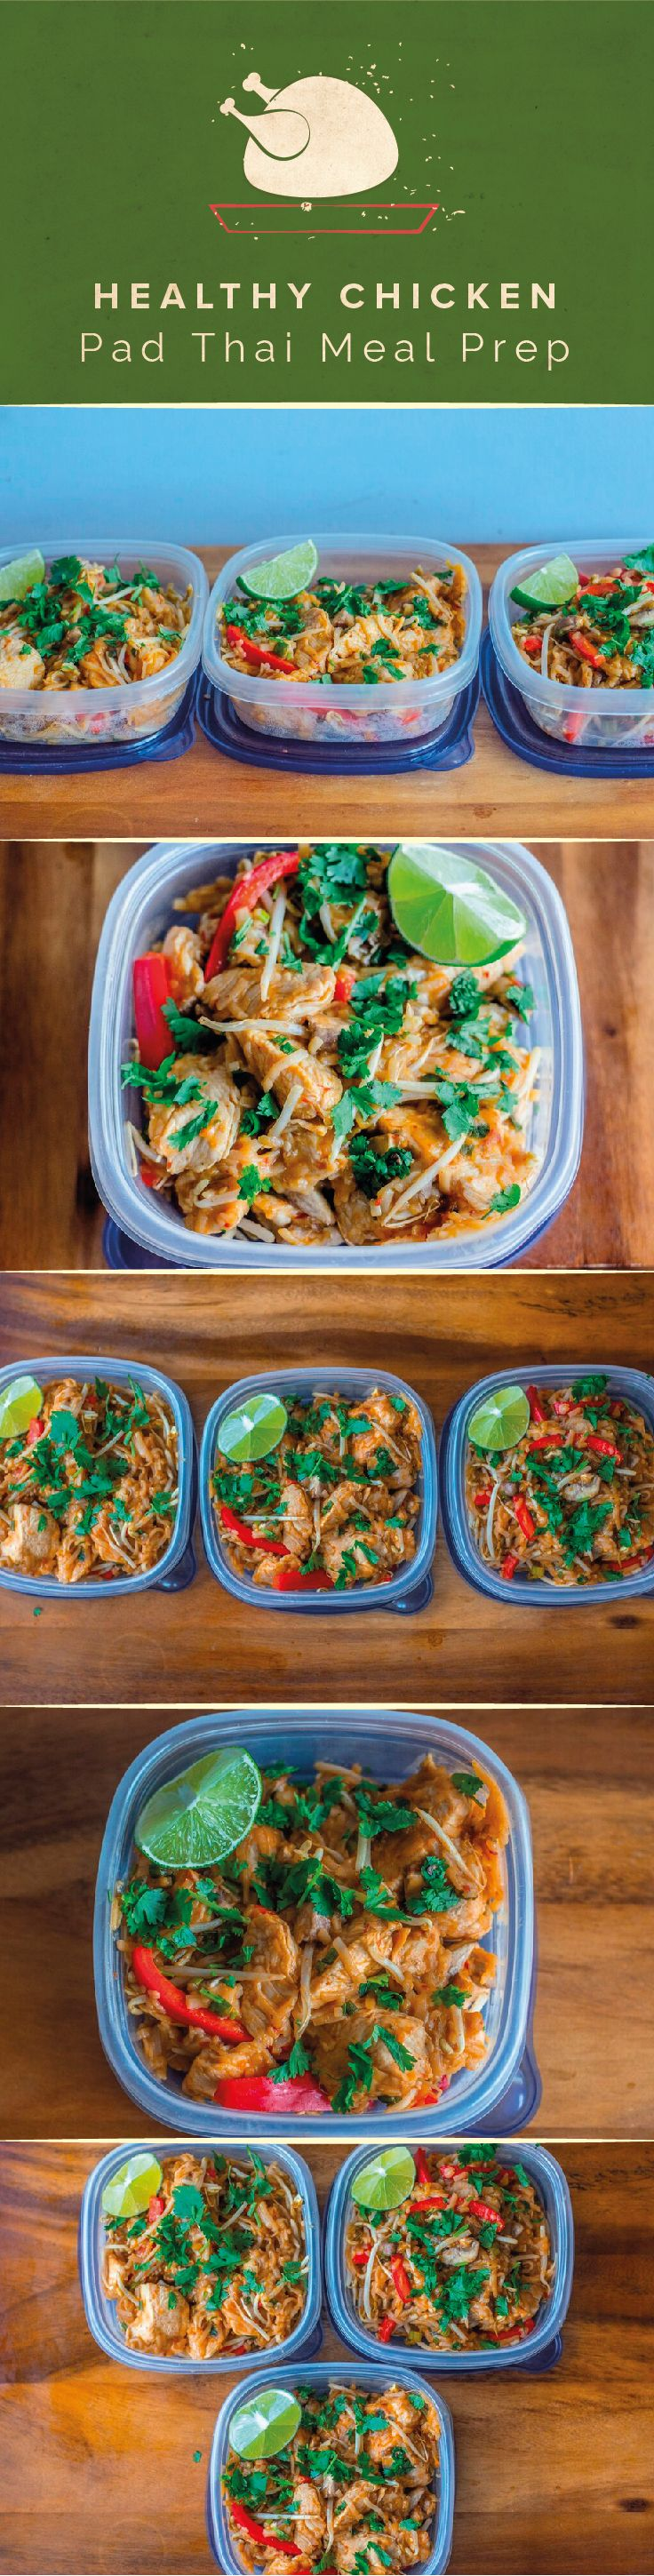 Recreating healthier versions of your favorite meals is a great way to add variety to your diet. Asian cuisines are among the most savory and exciting so it's fairly easy to draw inspiration from popular dishes. This chicken pad thai recipe is just what your meal prep needed. #fitmencook #fitwomencook #chicken #padthai #healt